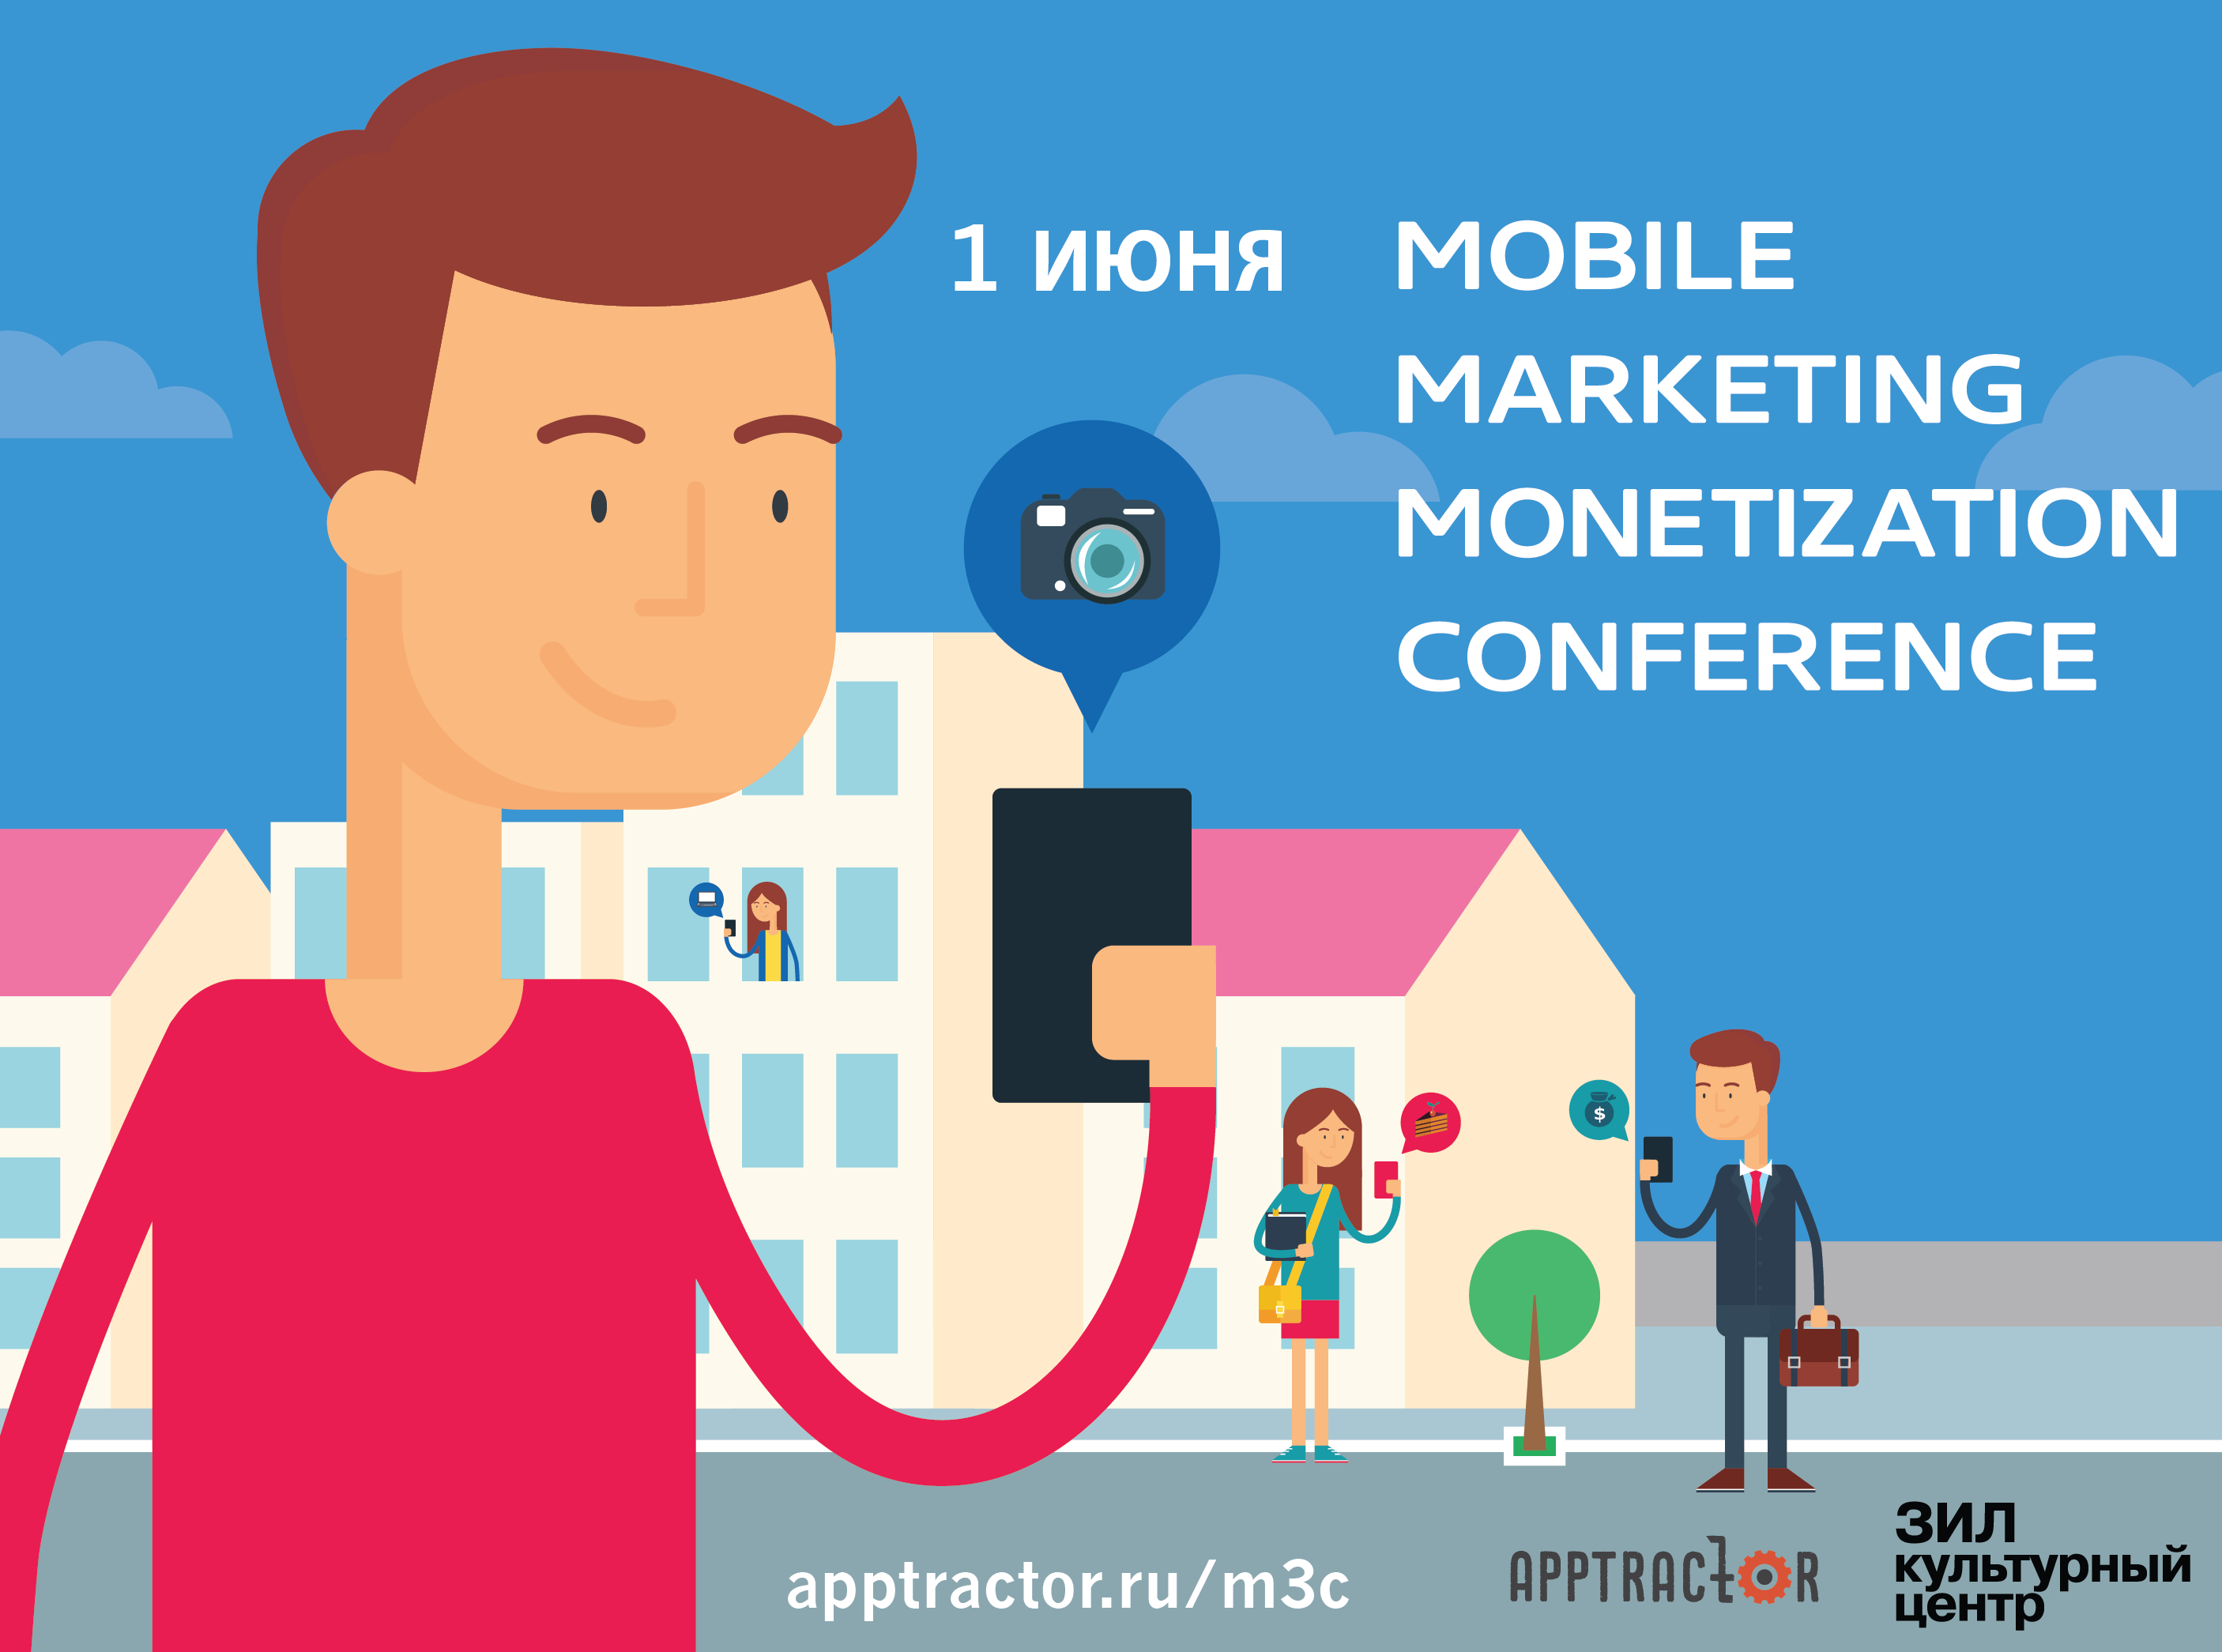 1 июня — Mobile Marketing & Monetization Conference